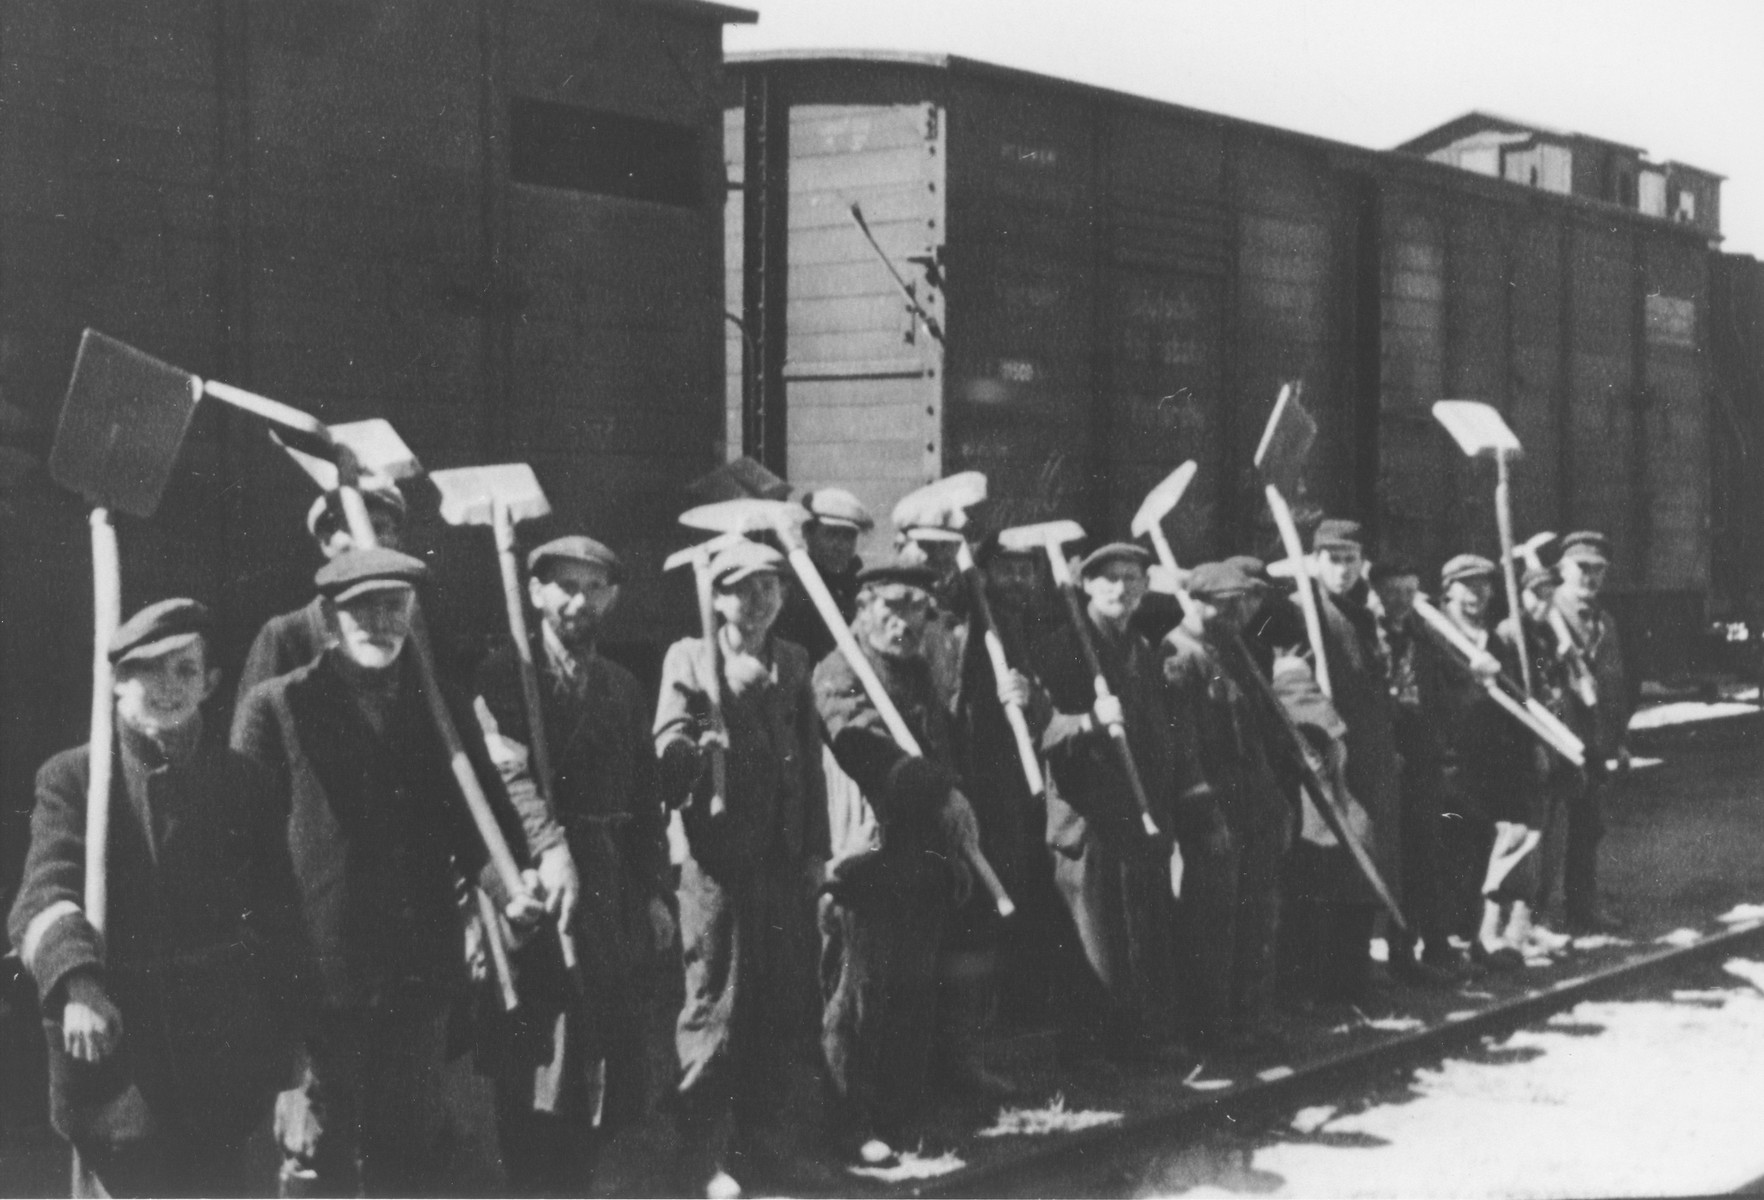 Jewish men and teenagers line-up with shovels in front of a train in an unidentified ghetto.